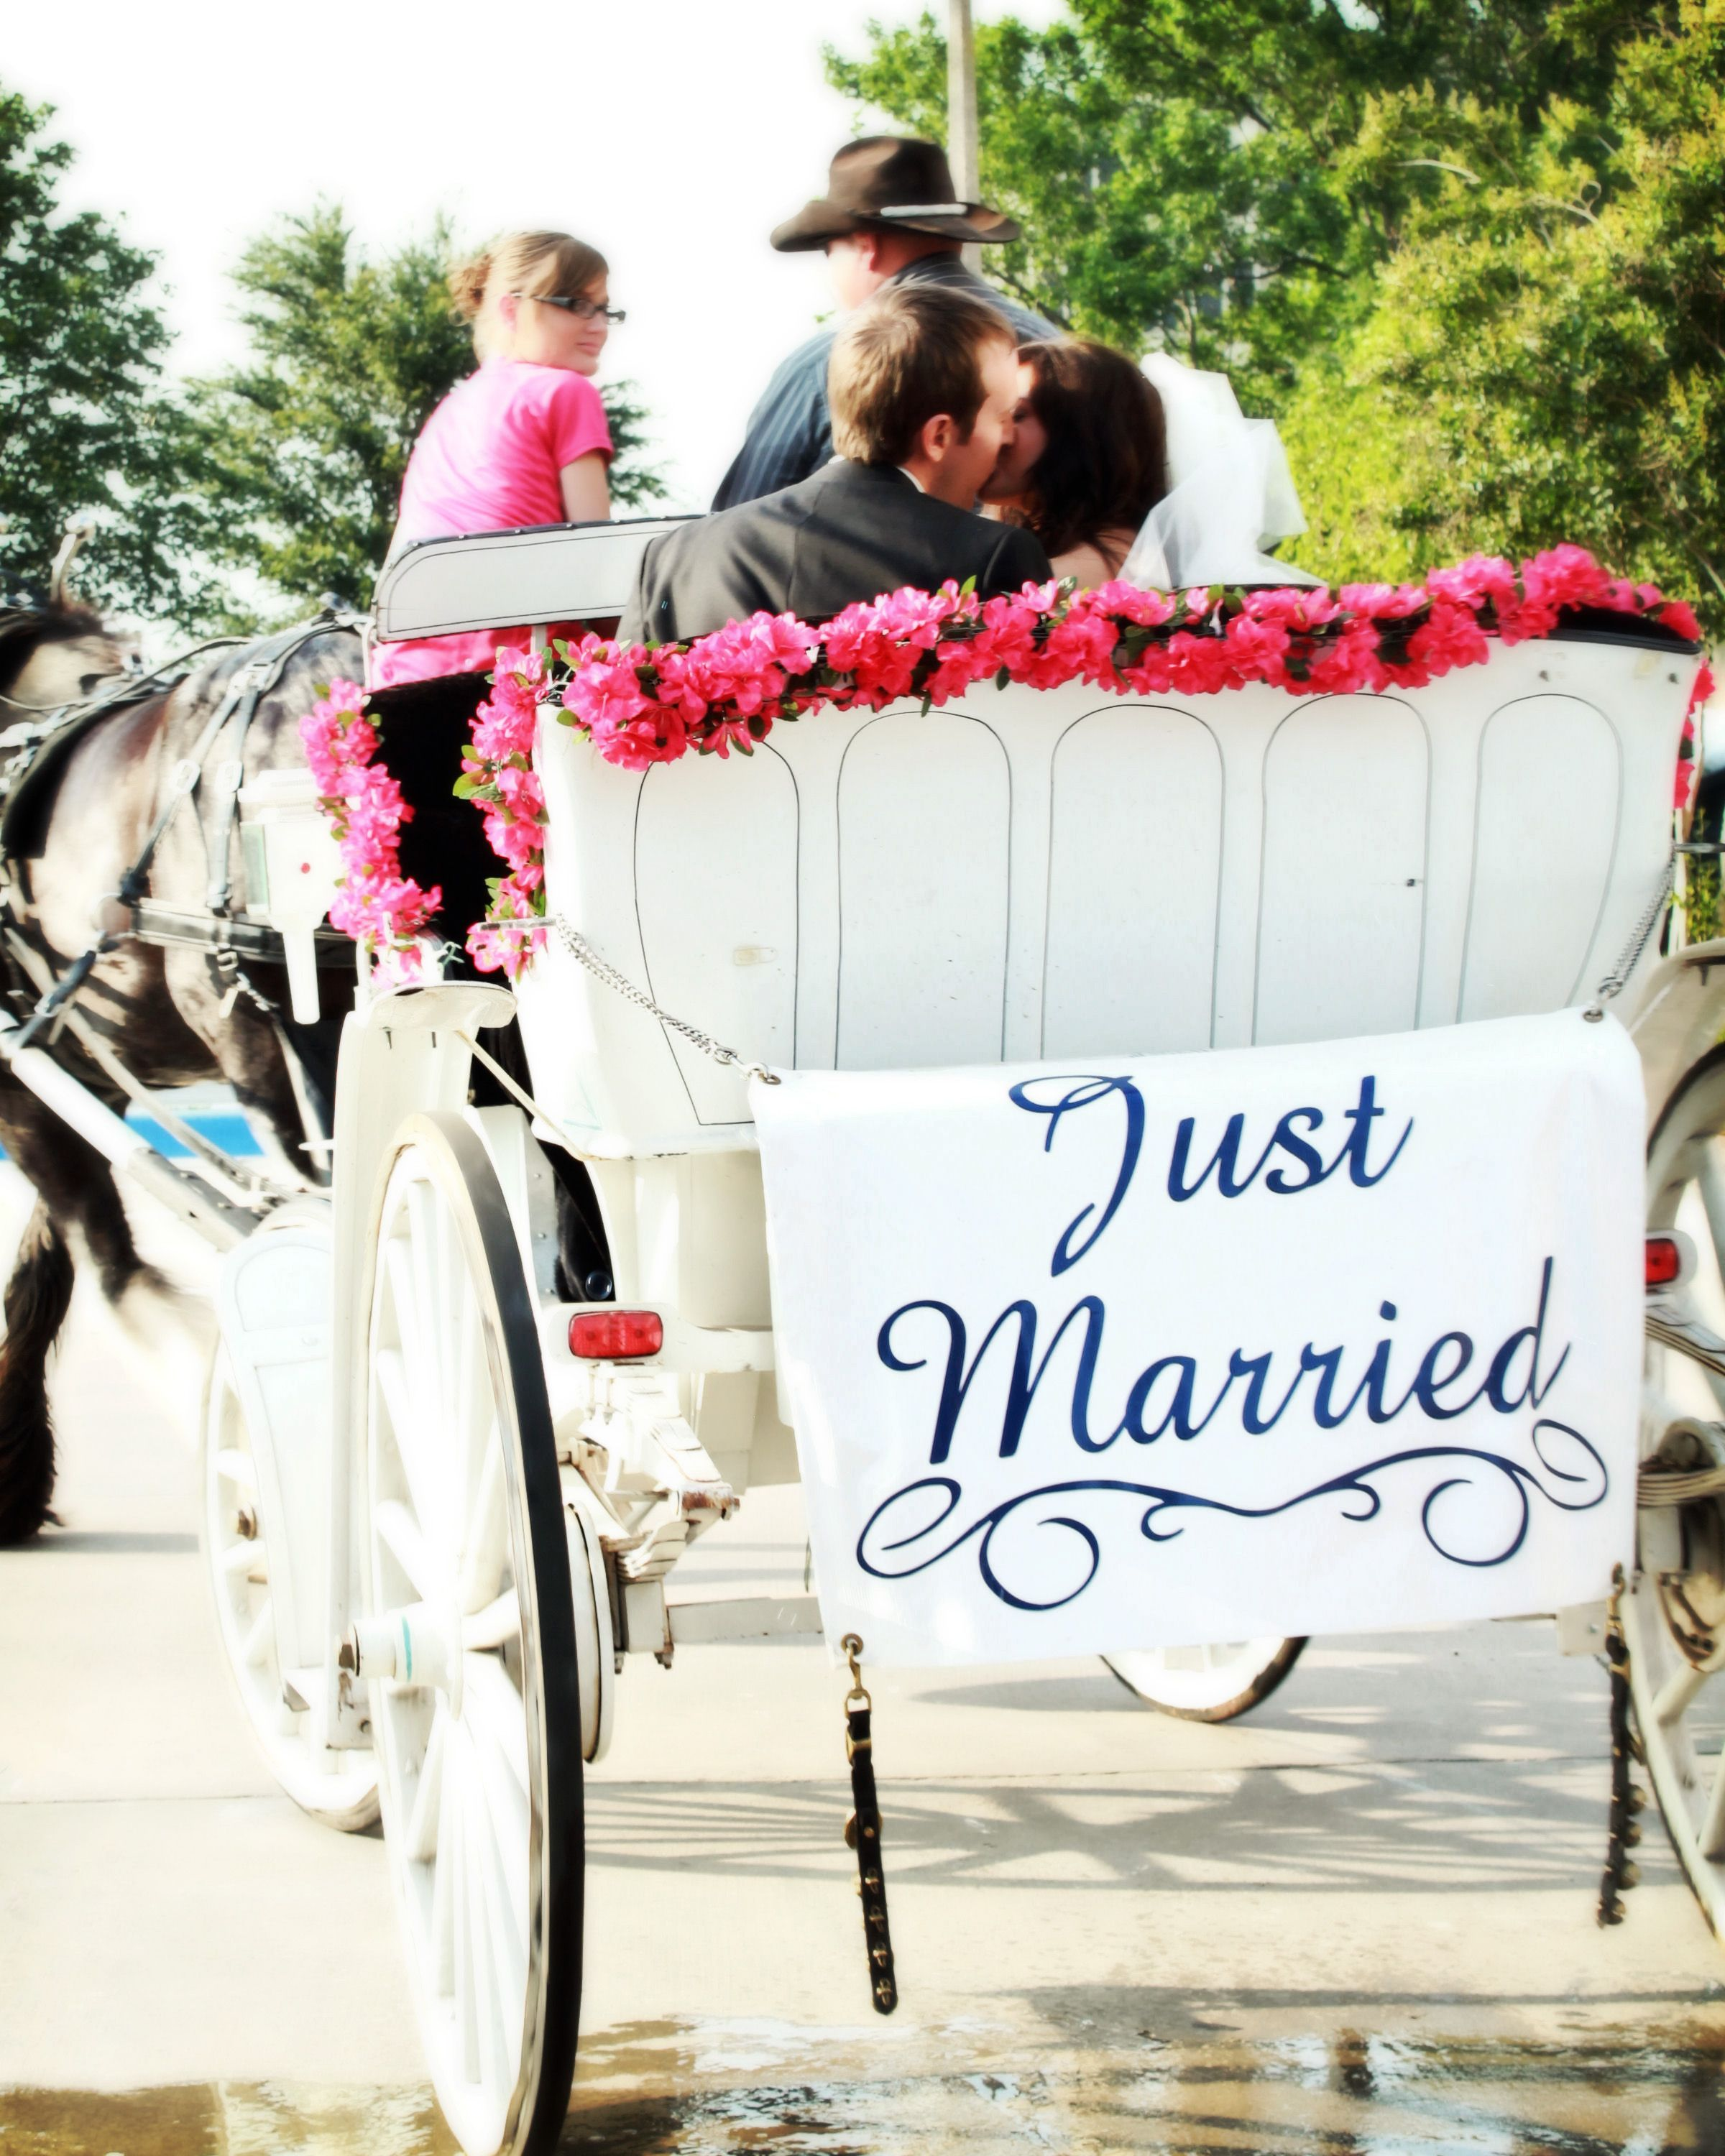 Horse drawn carriage just married! Yepp, how I want my